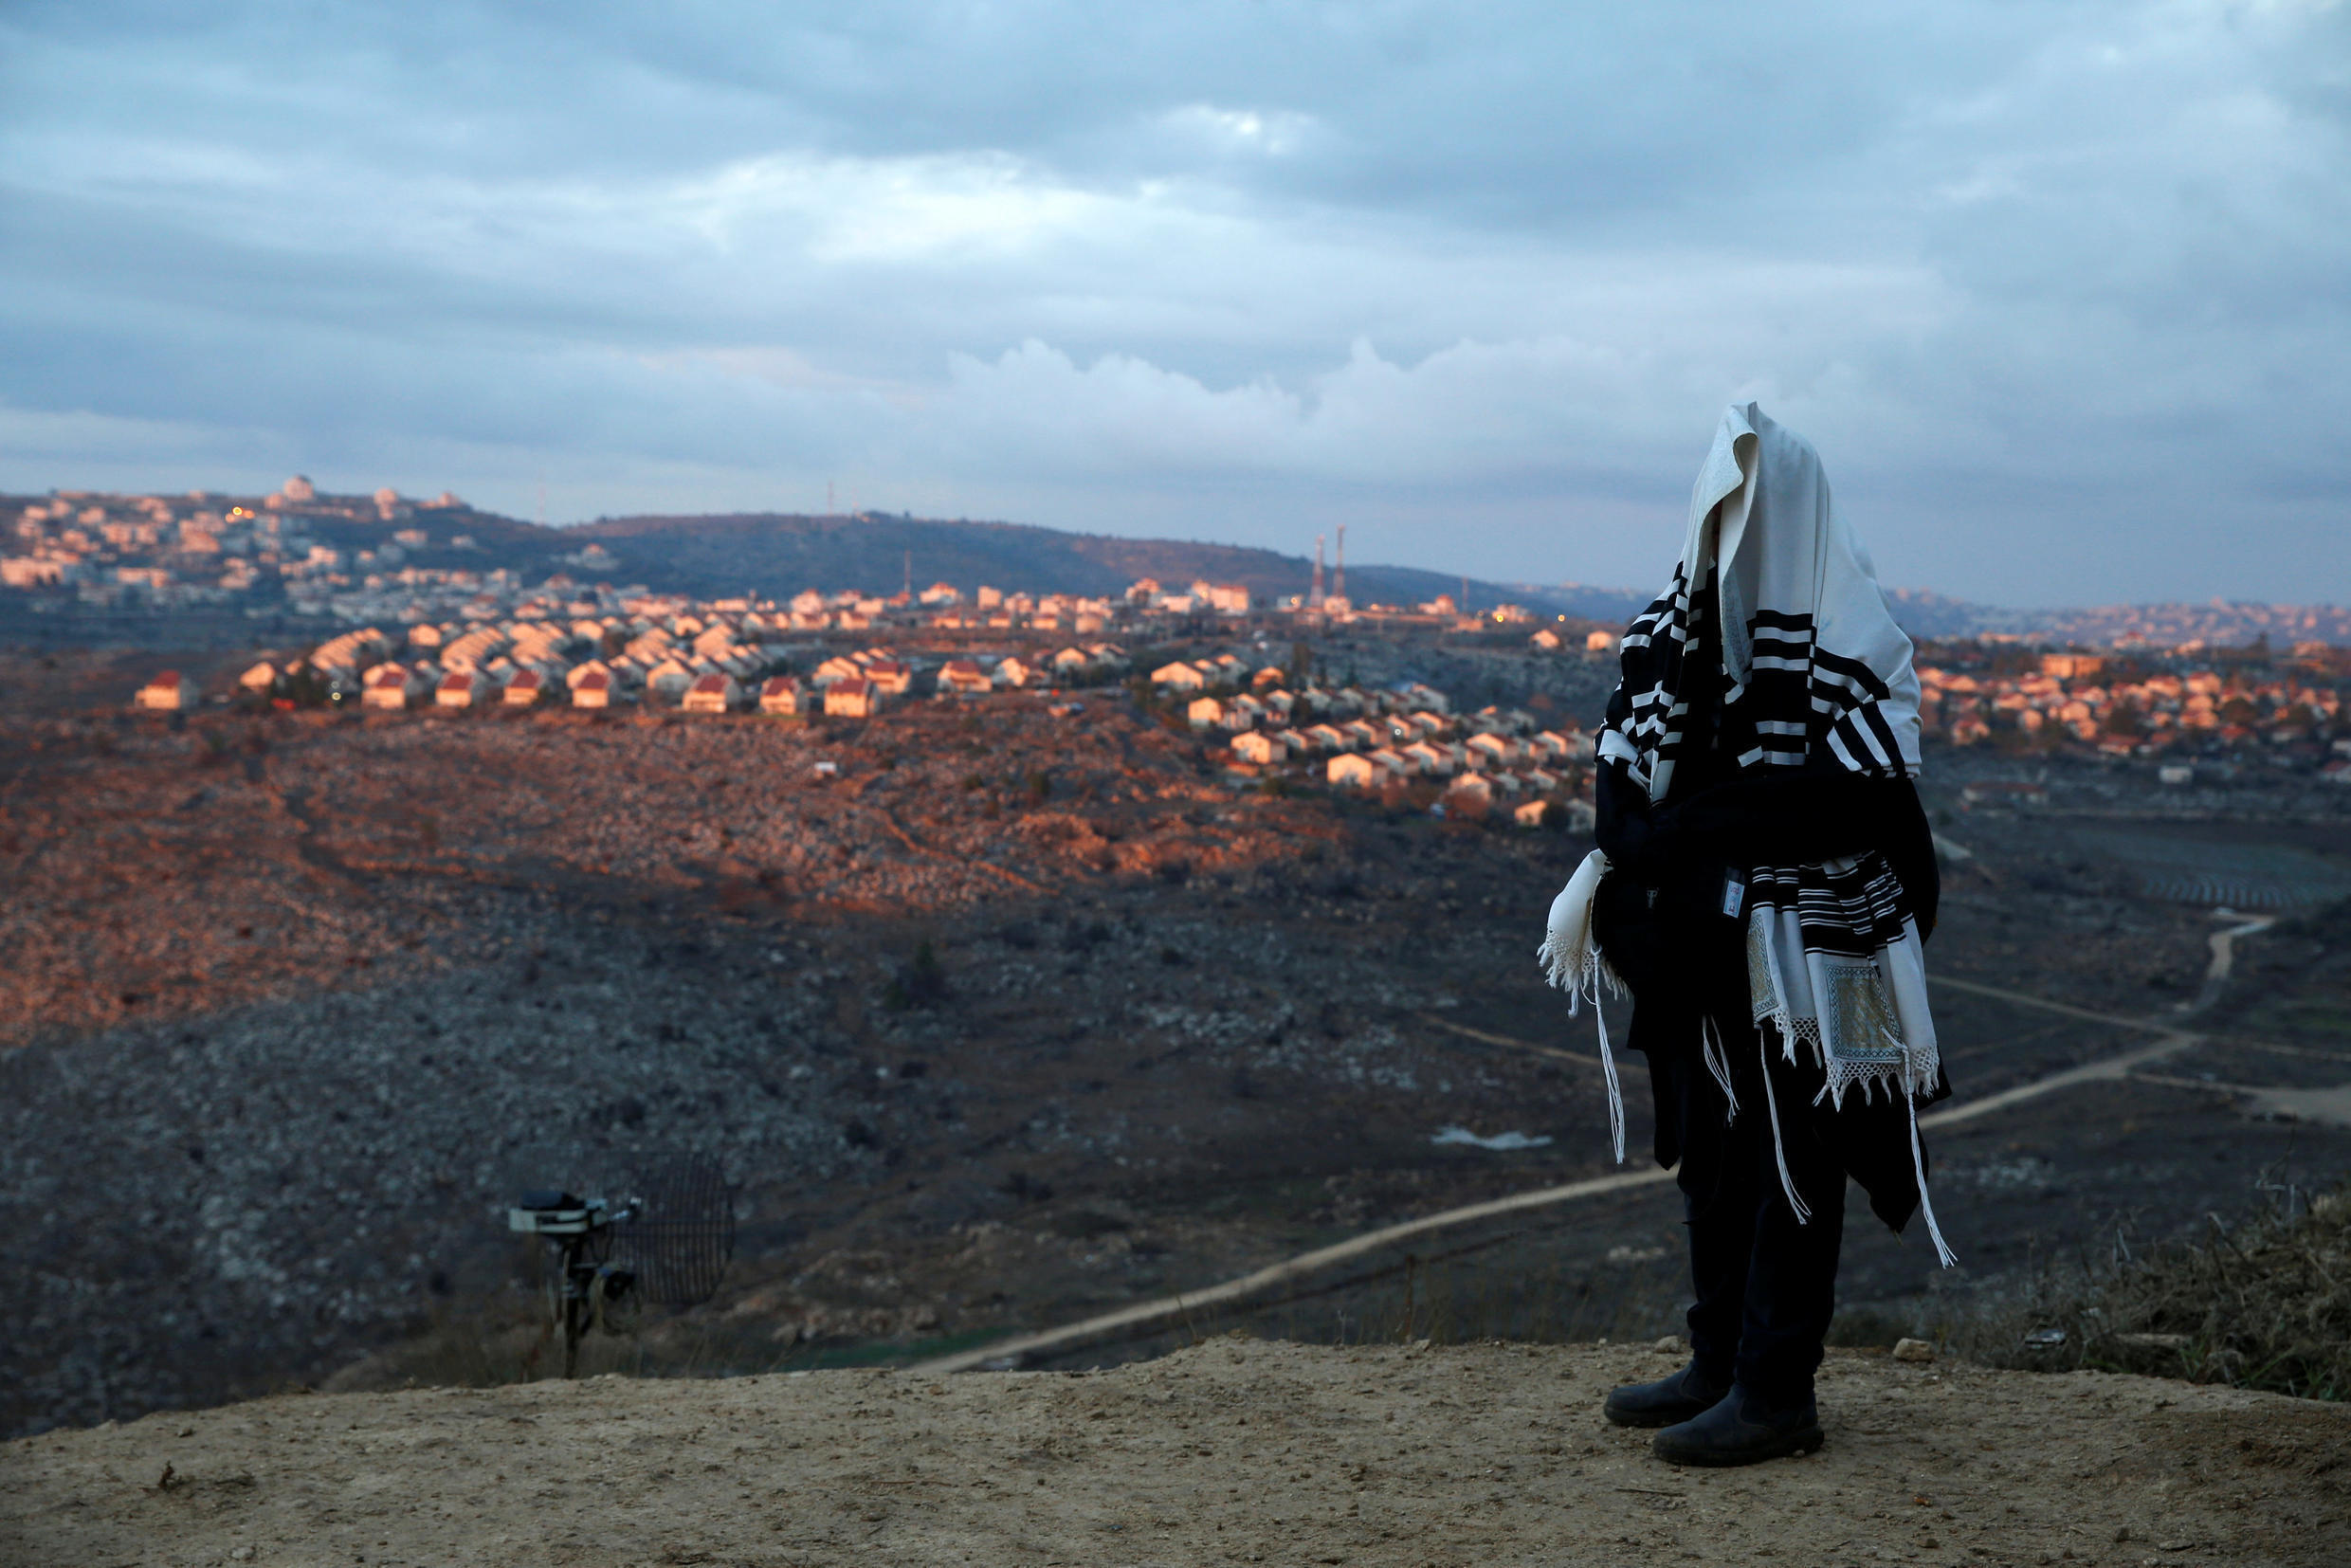 An Israeli settler at the Amona outpost in the West Bank, 18 December 2016.